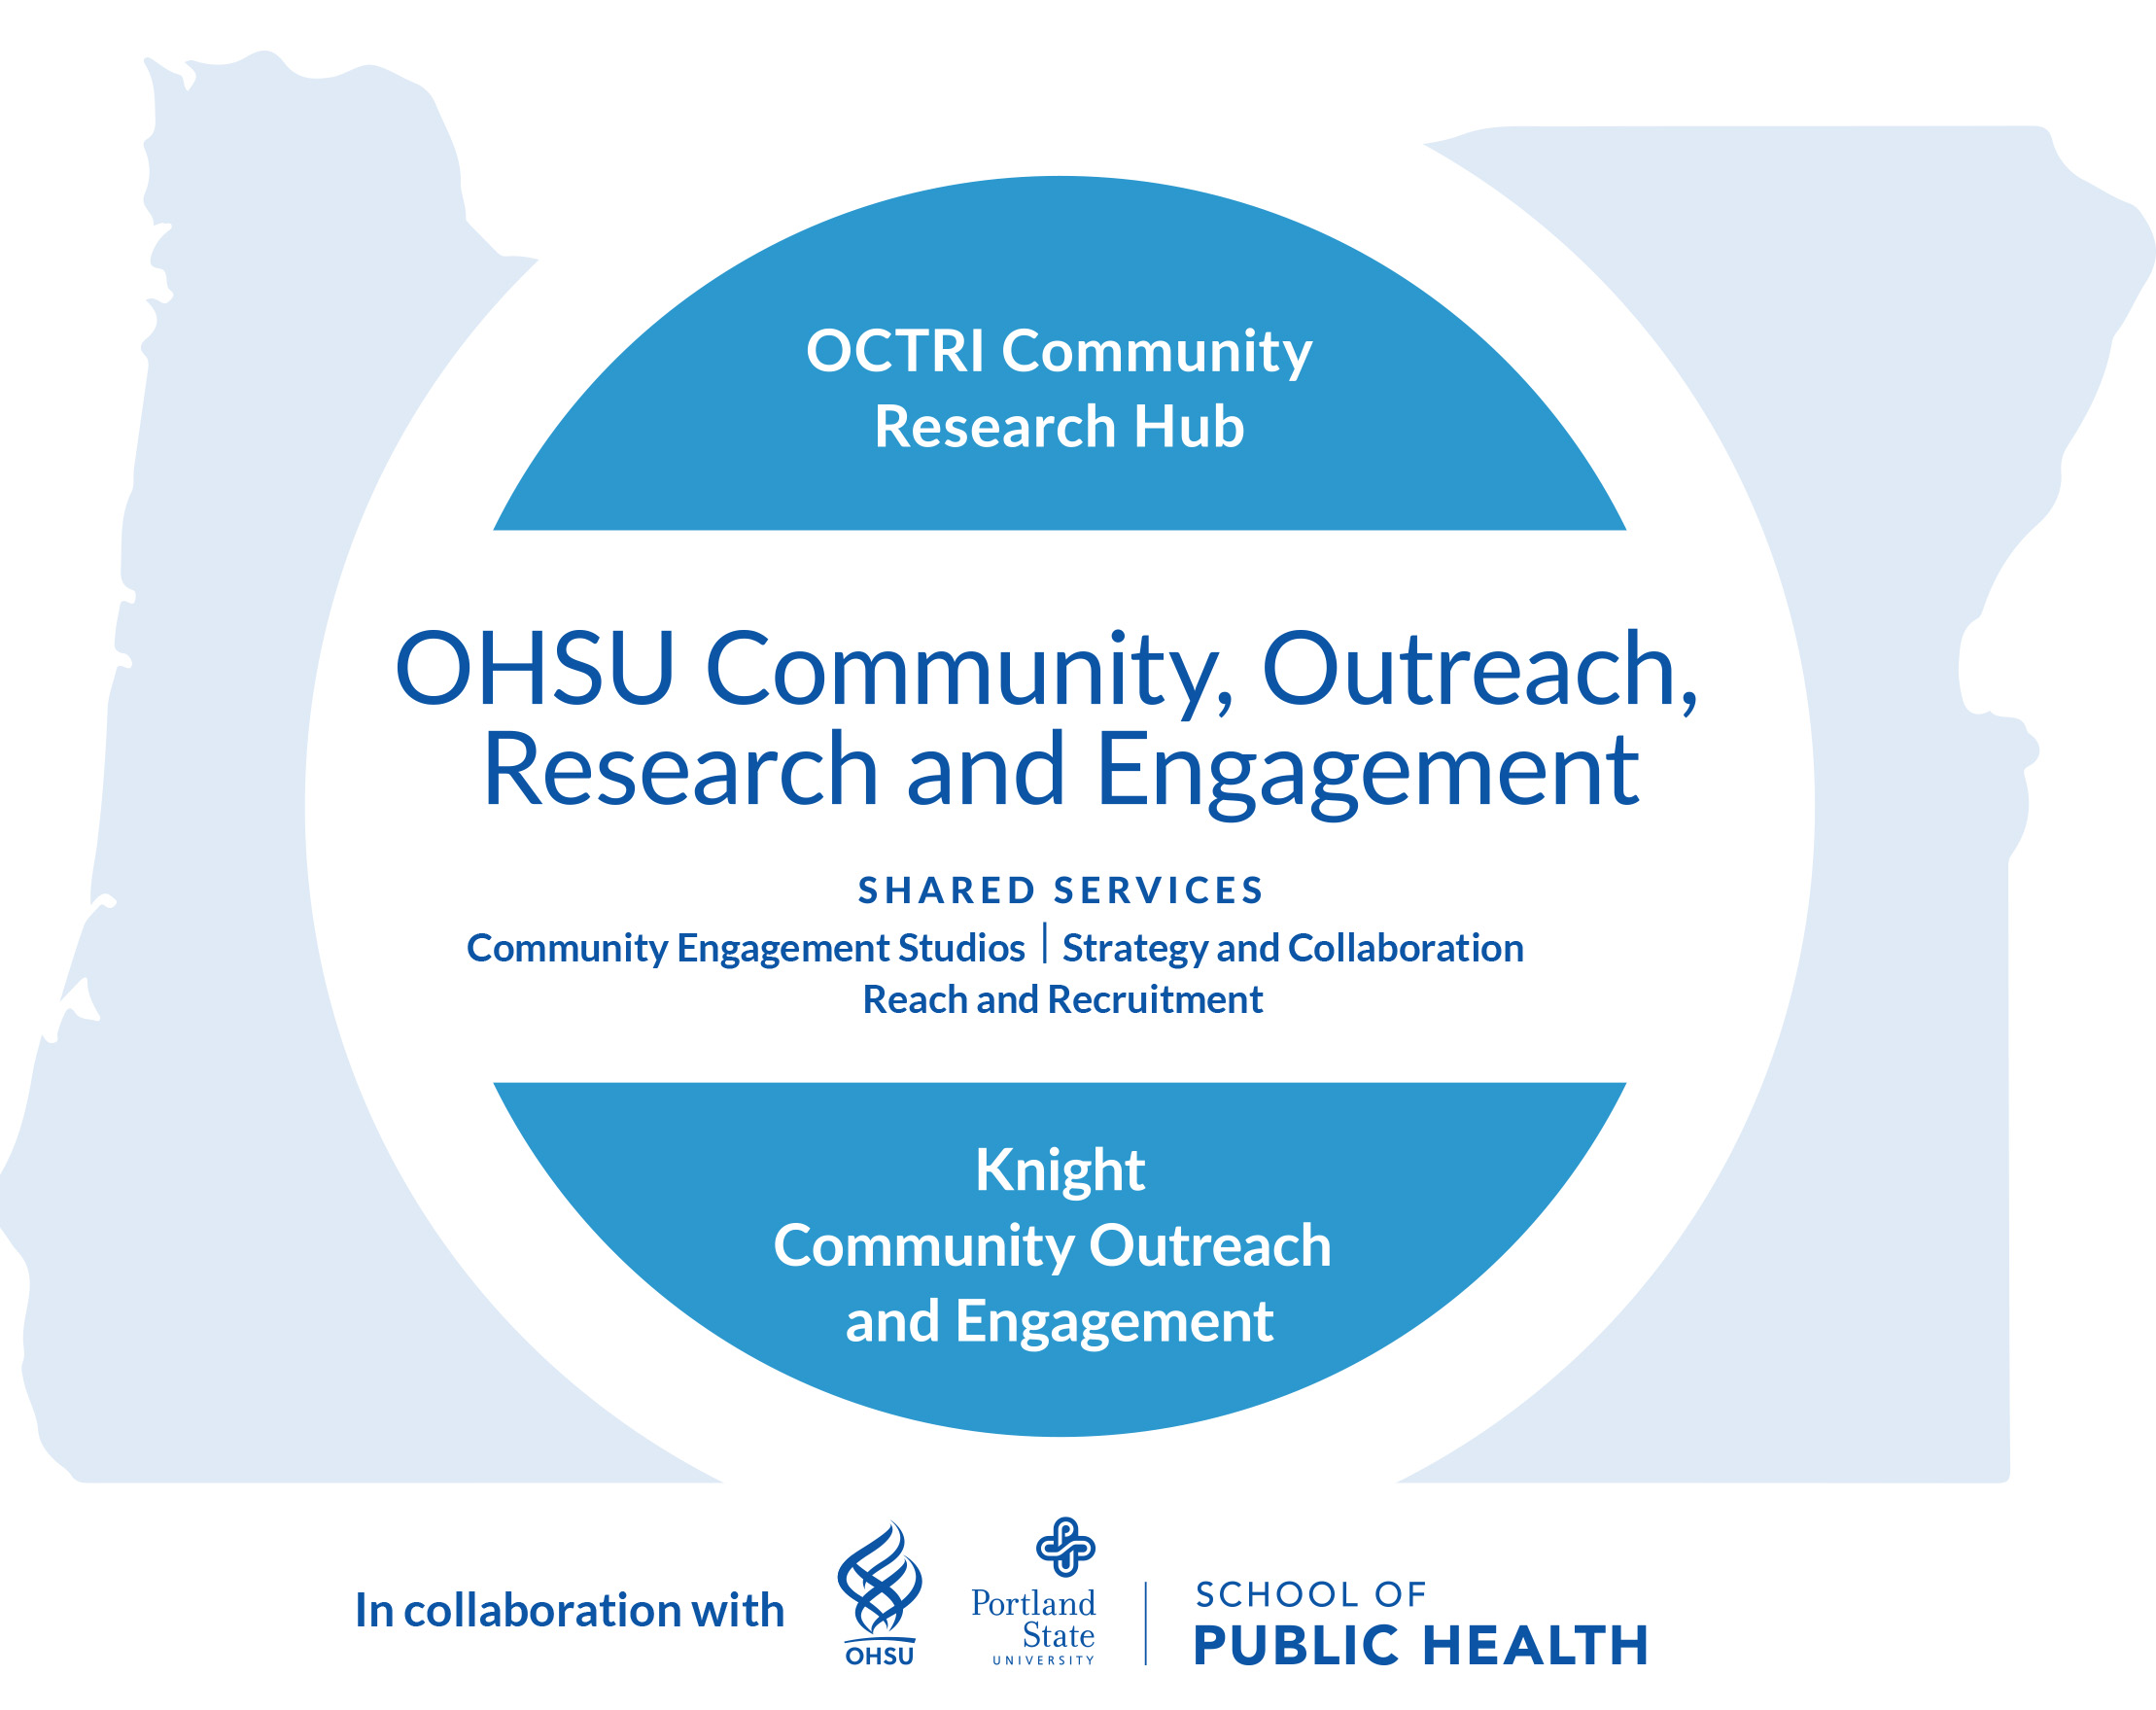 CORE logo showing shared services of OCTRI and Knight Community Outreach throughout Oregon